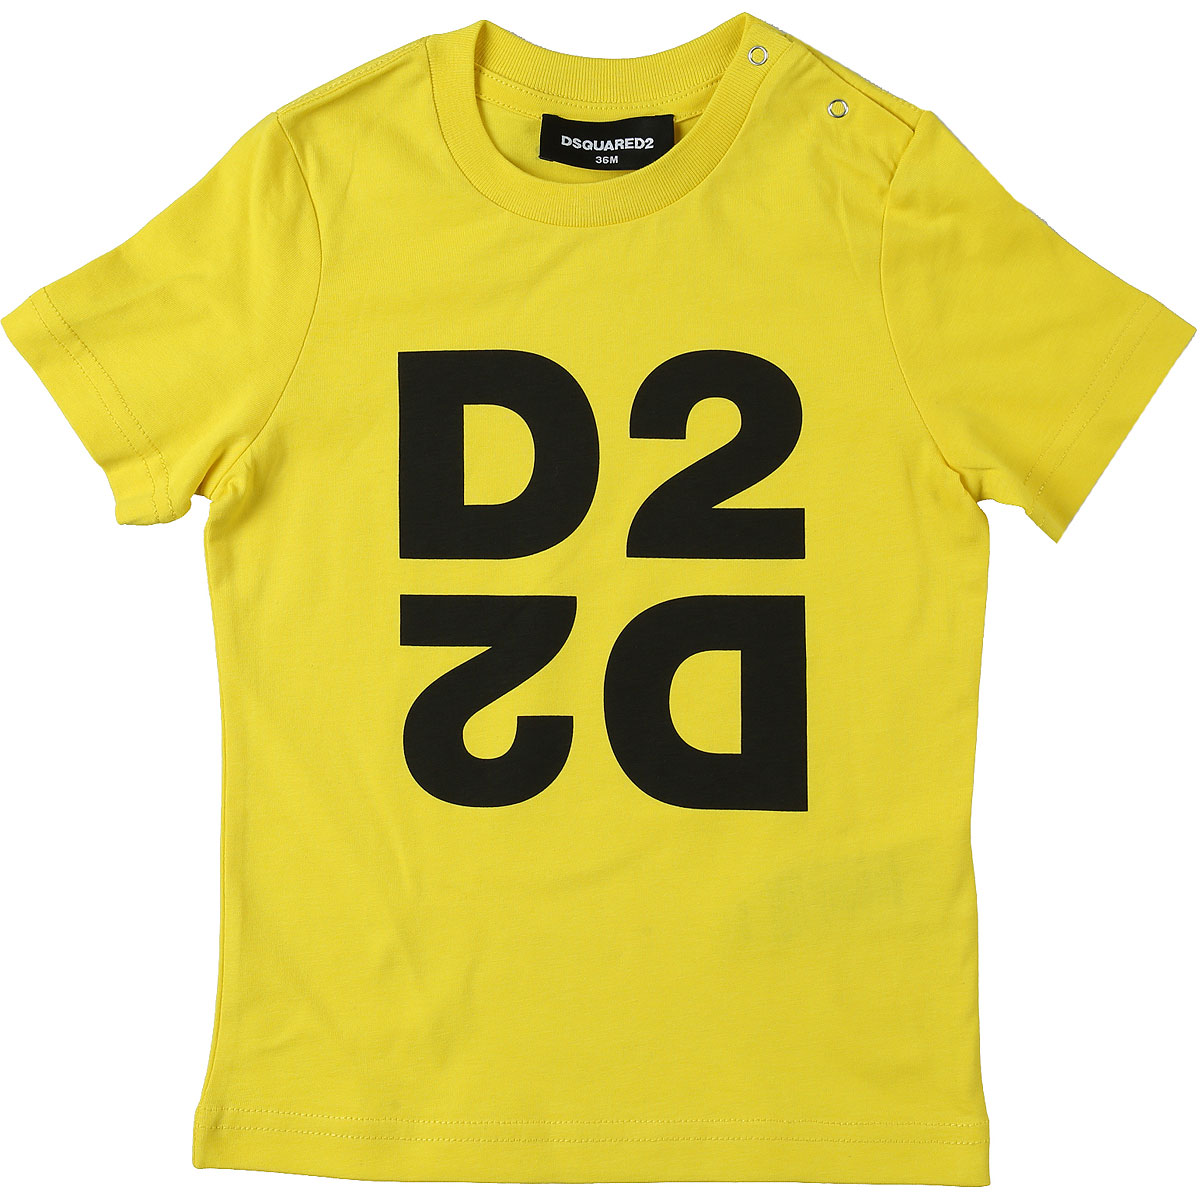 Dsquared2 Baby T-Shirt for Boys On Sale, Yellow, Cotton, 2019, 18M 2Y 3Y 9M